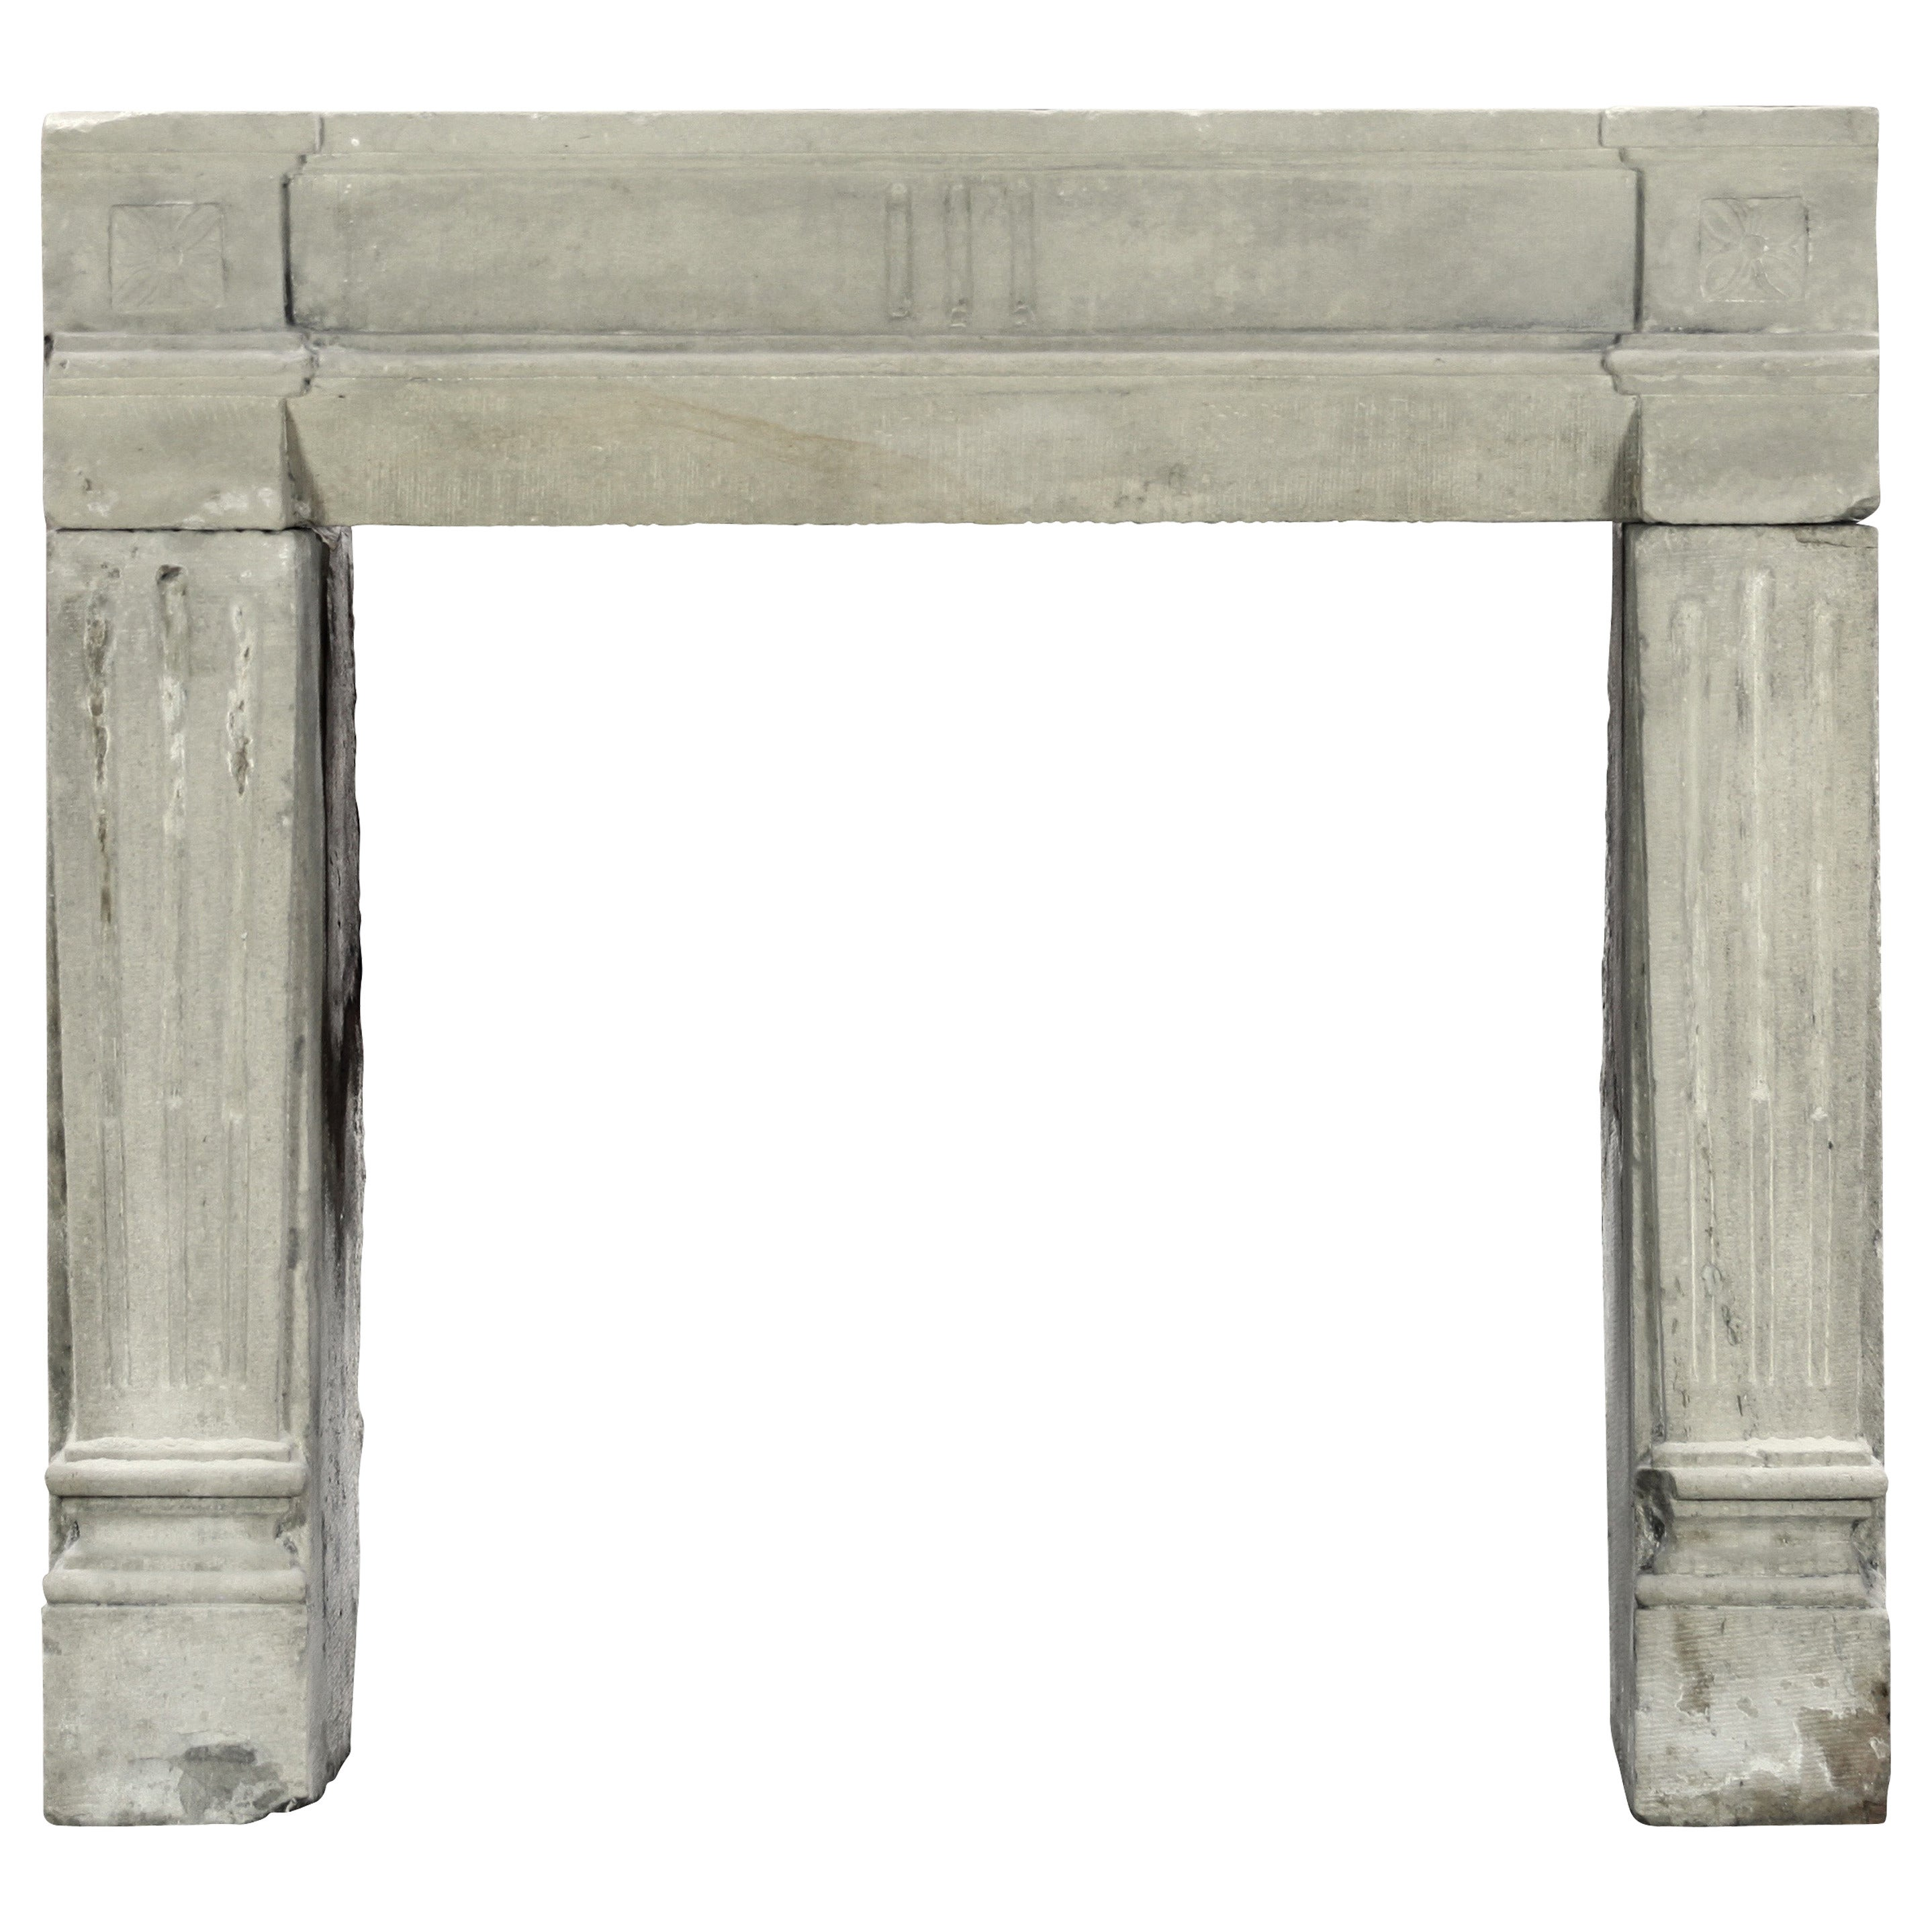 French Country Fireplace 18th Century Petite Grez Stone French Country Fireplace Surround